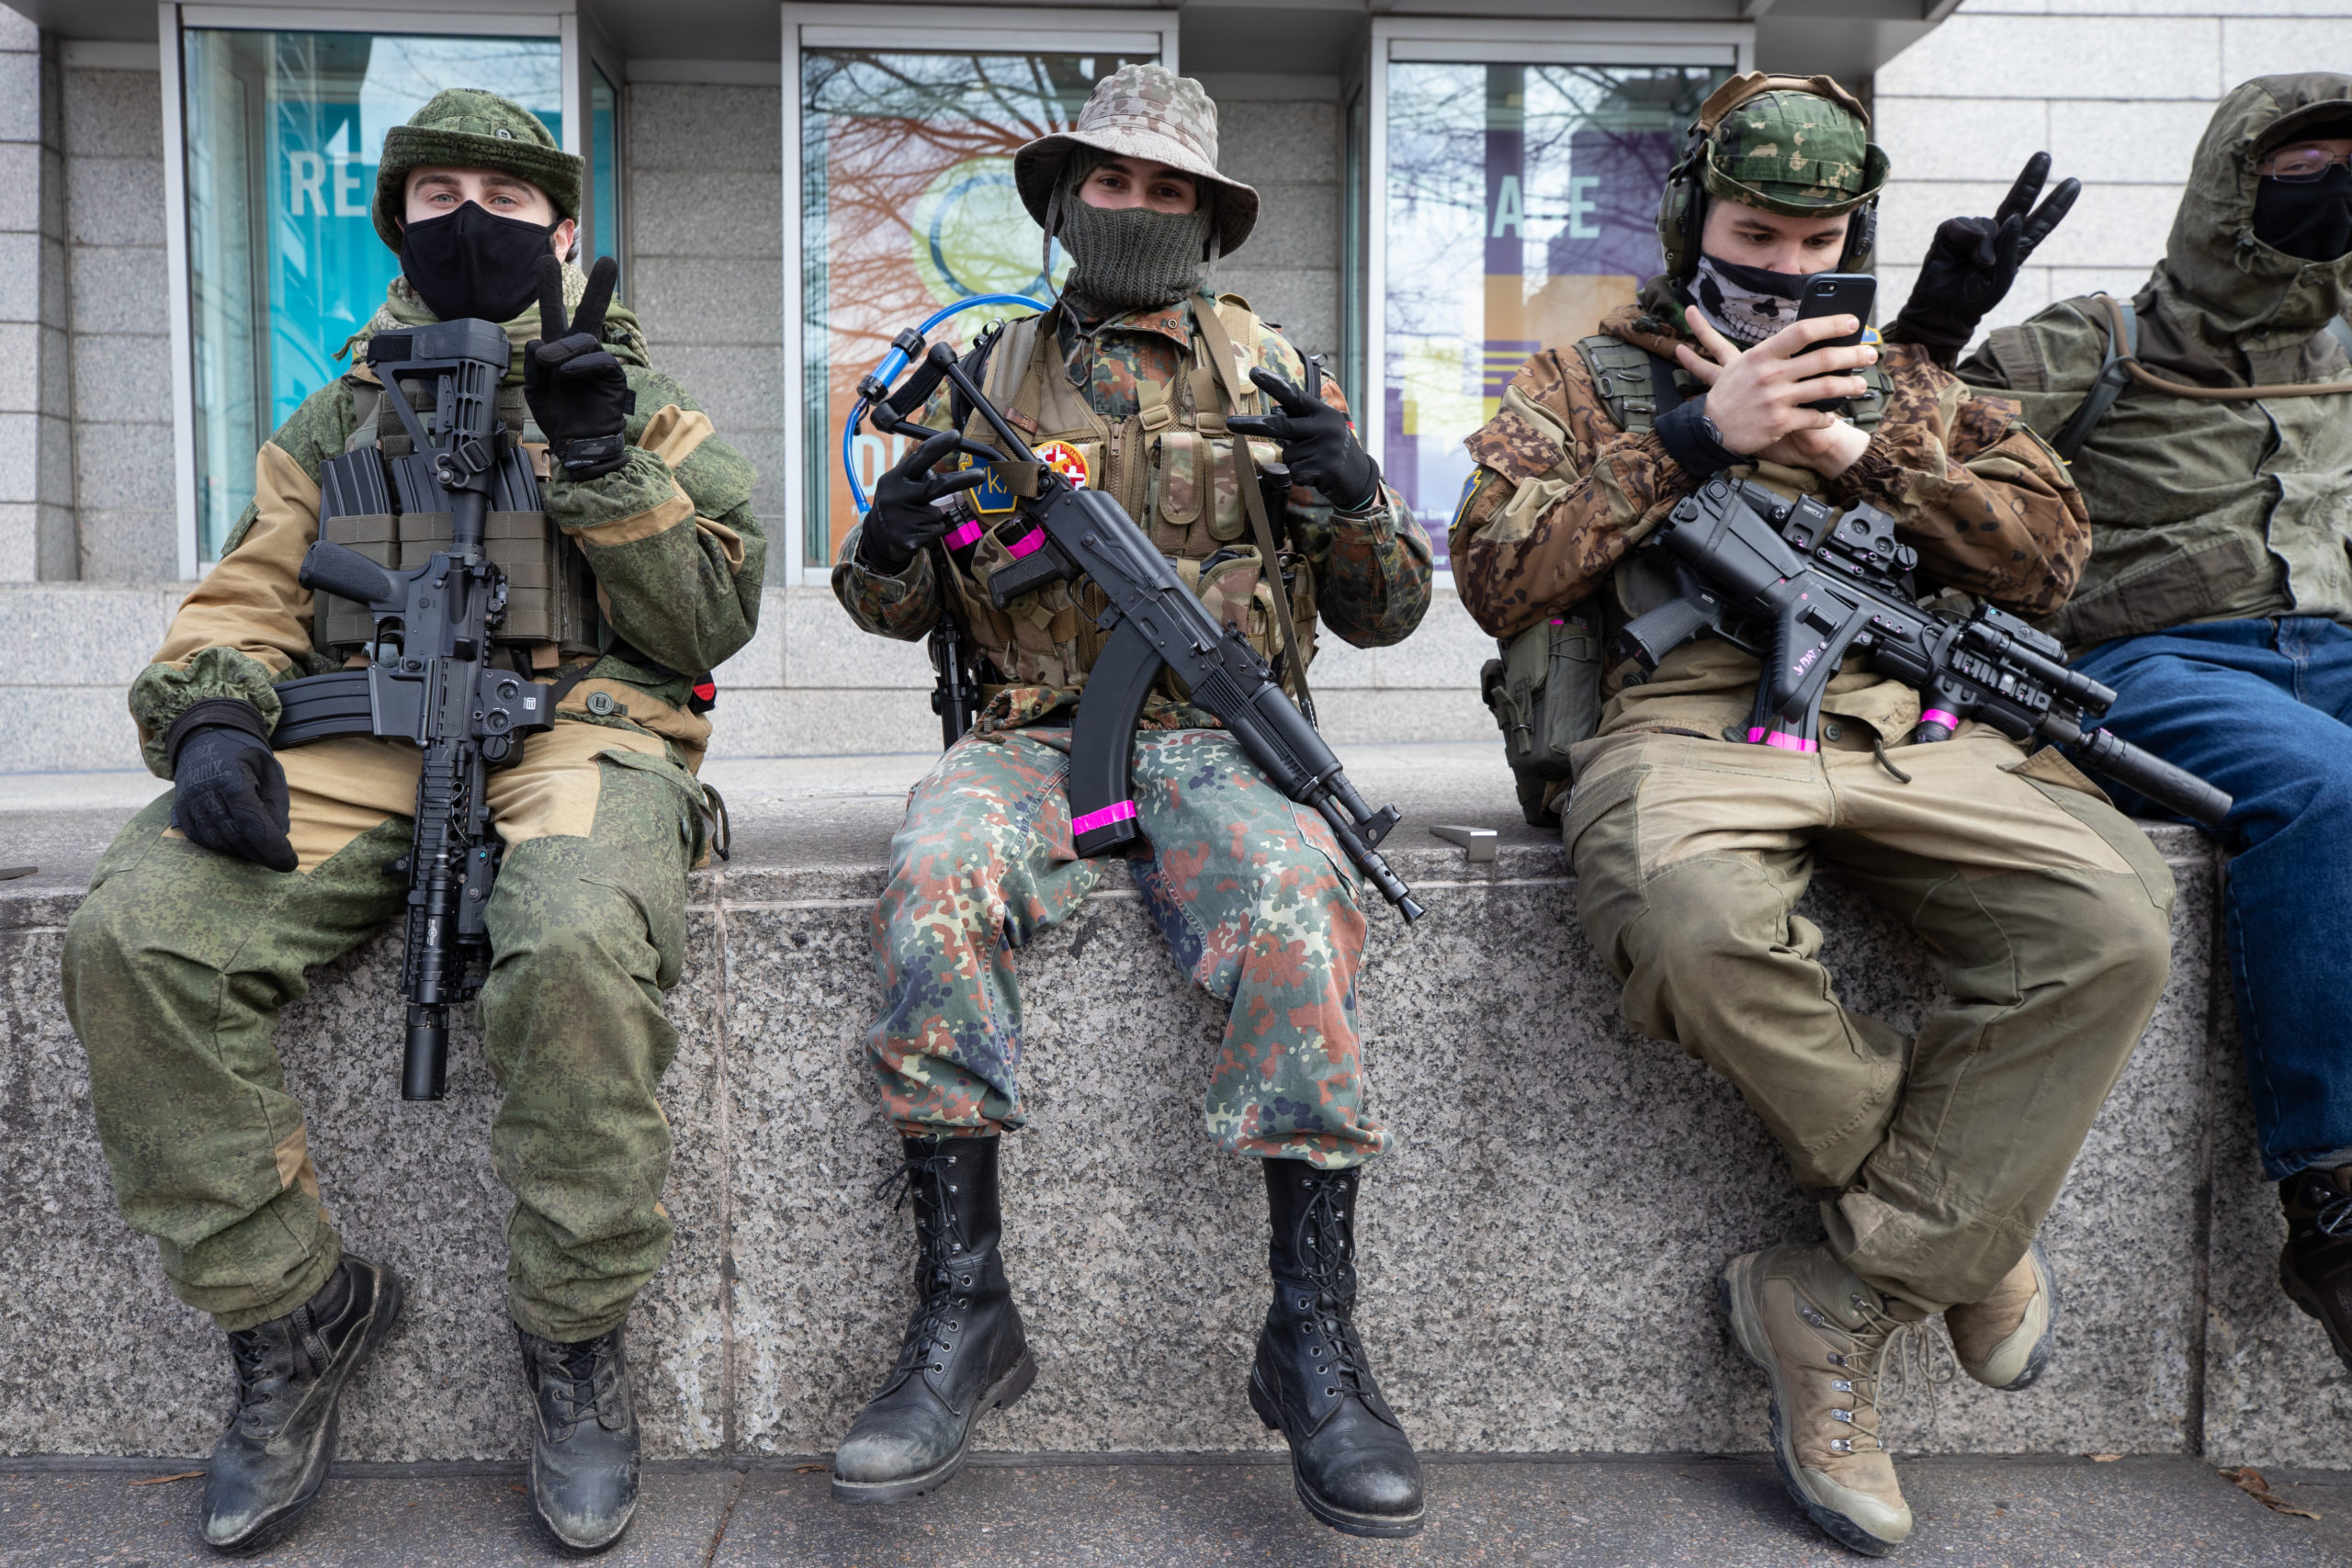 """A group of protesters carried firearms and wore """"/k/"""" patches, frequently associated with a 4chan page where people discuss weapons, in Richmond, Virginia, on Jan. 18, 2021. (Kaylee Greenlee - Daily Caller News Foundation)"""